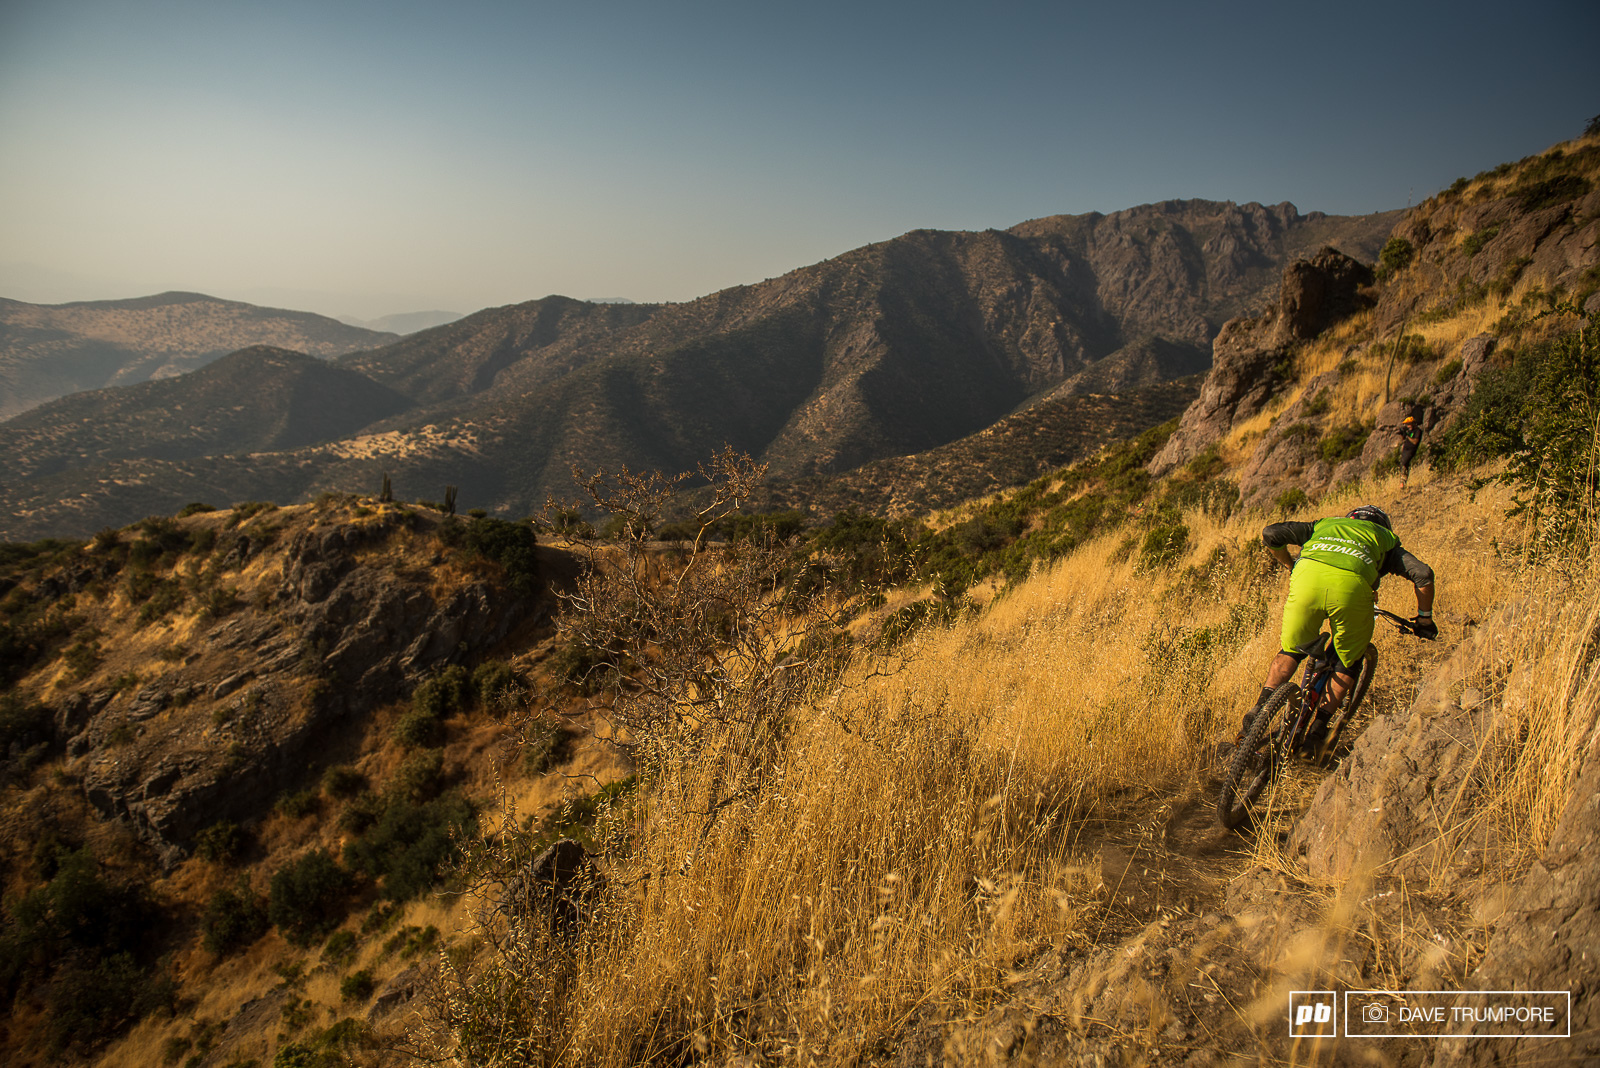 Even in the foothills of the Andes the trails are loose and rugged.